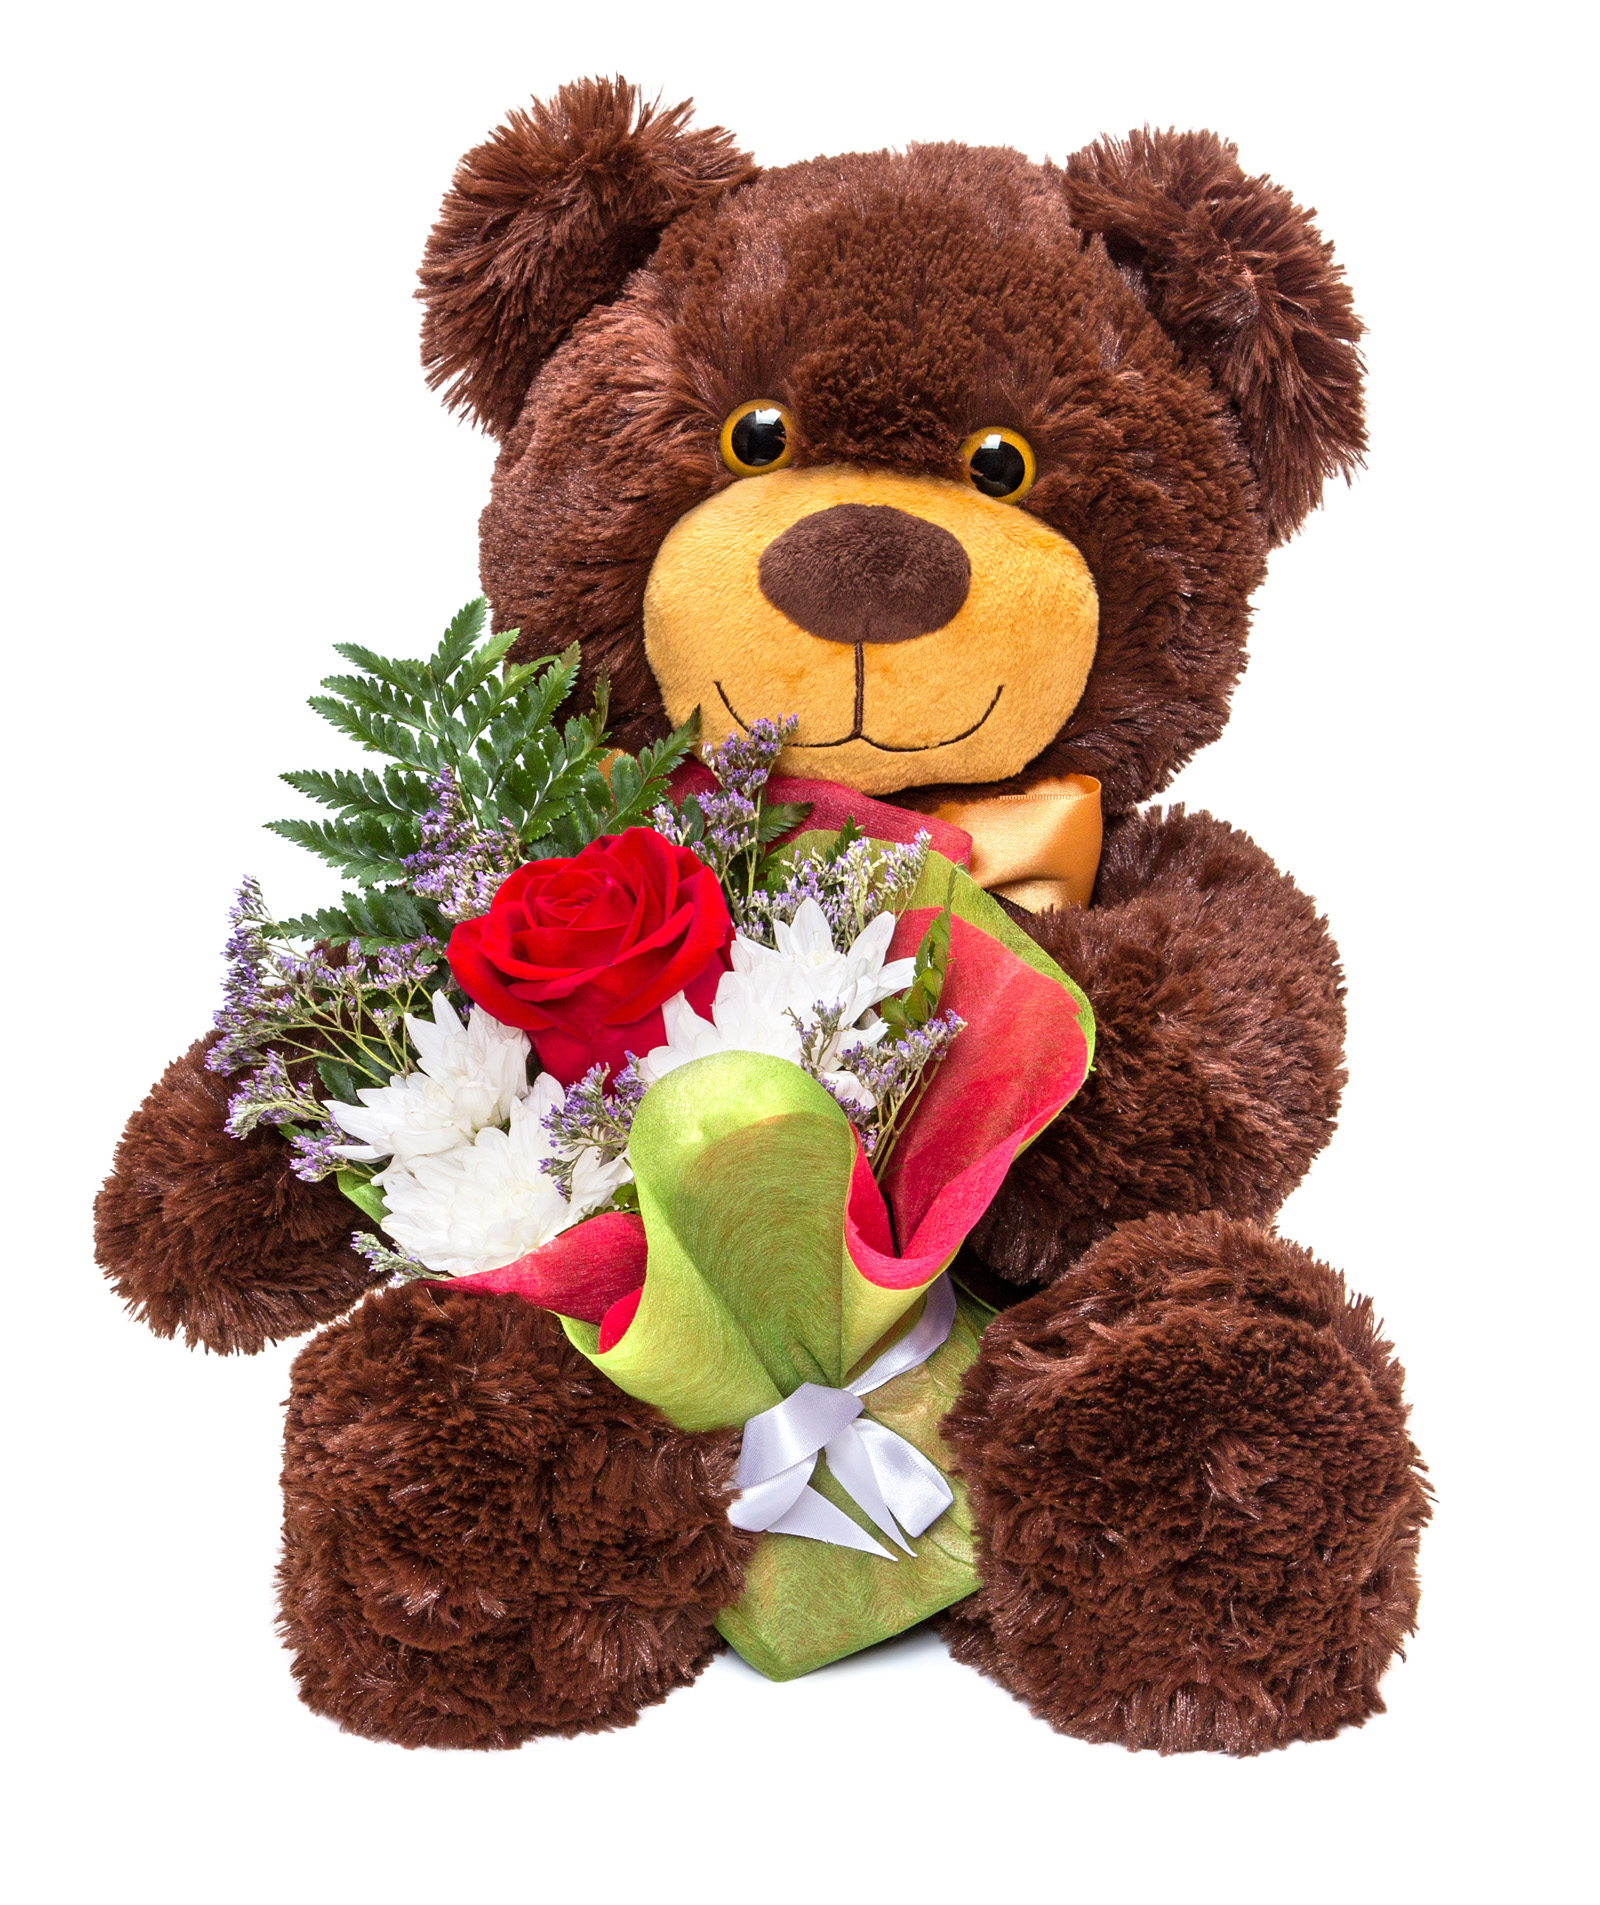 Cute teddy bear holding a bouquet 51526